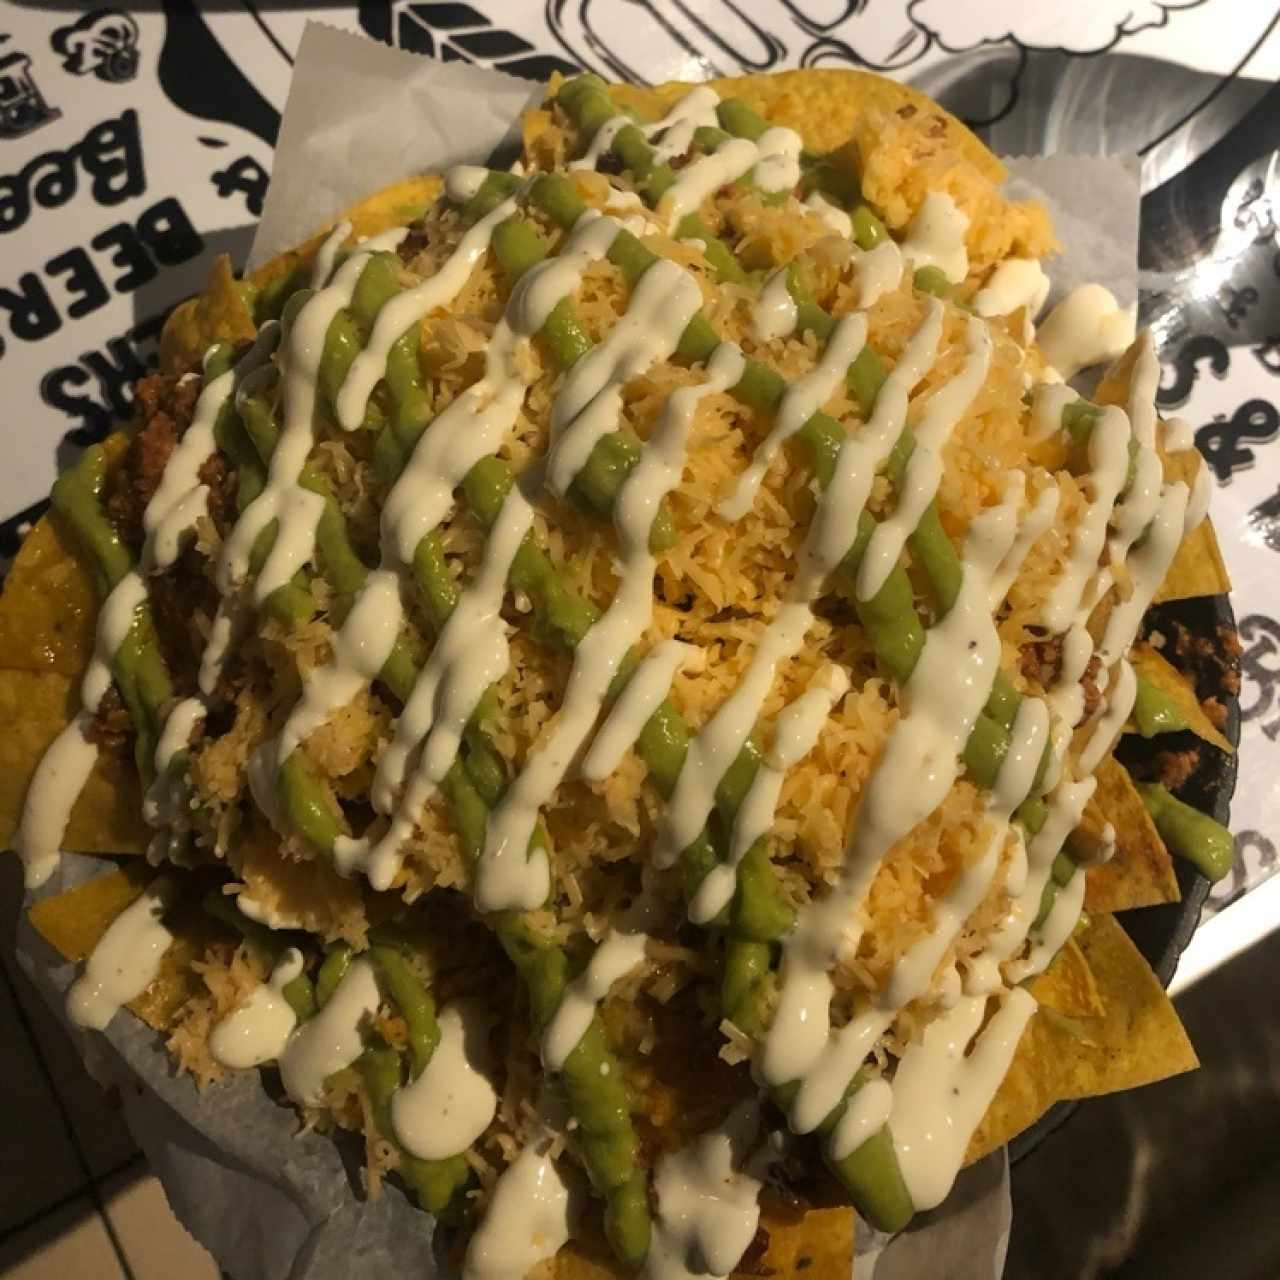 Finger Food - Touch down nachos